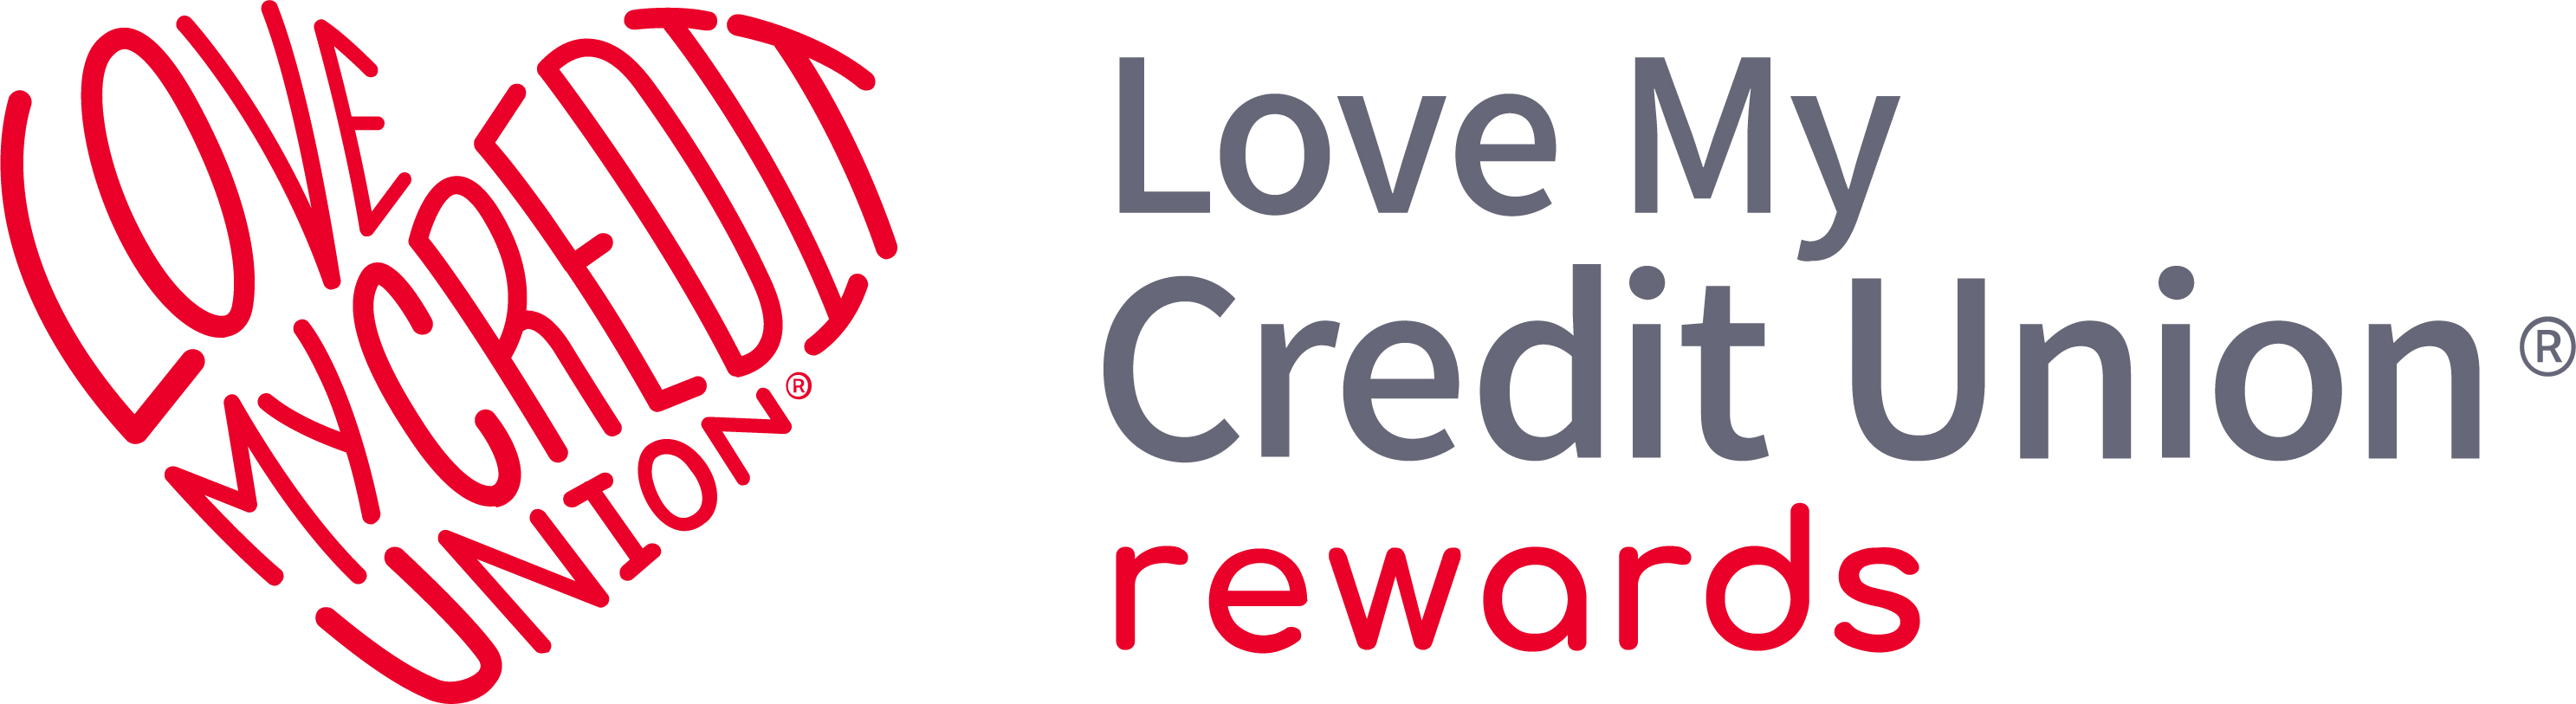 love my credit union rewards